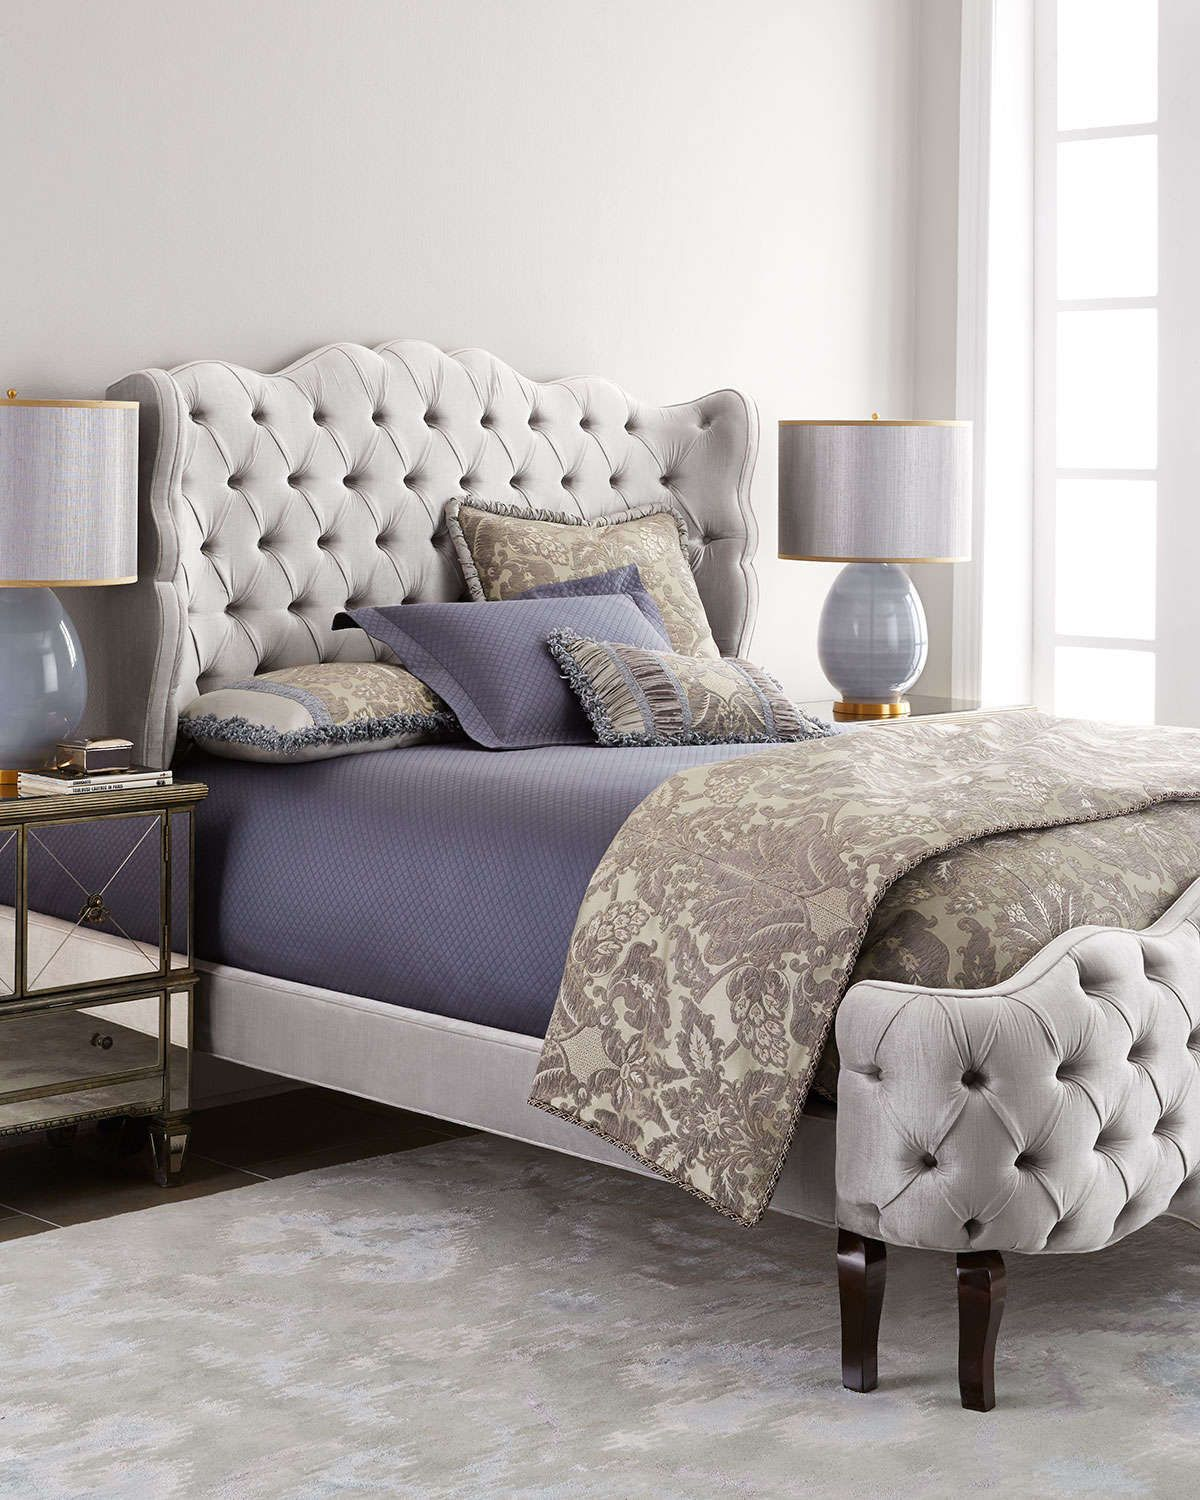 Pantages California King Tufted Bed | Duerme, Mi amor y Casas